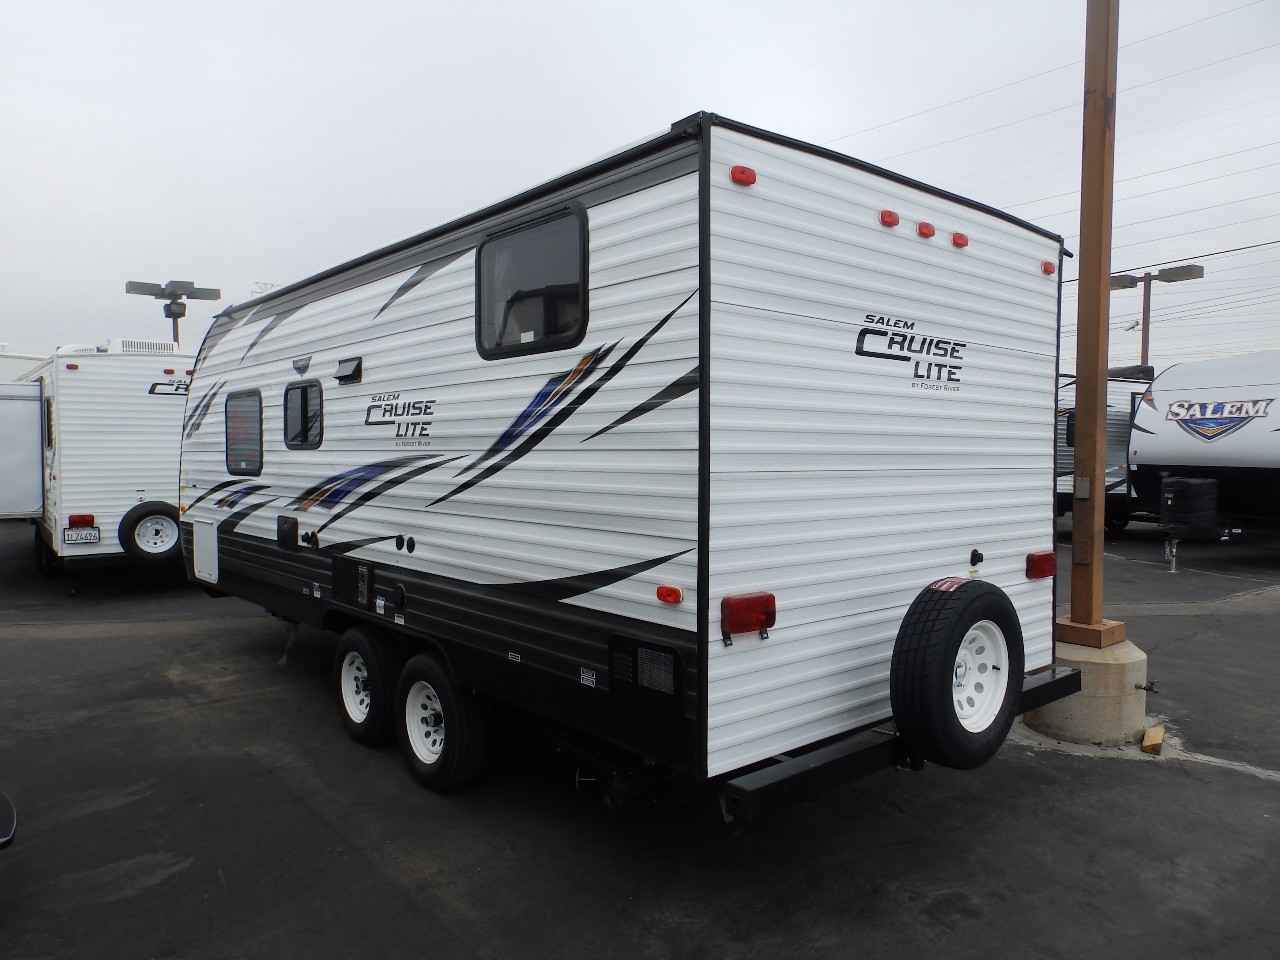 travel trailer v front view brain diagram 2018 new forest river salem 201bhxl murphy bed